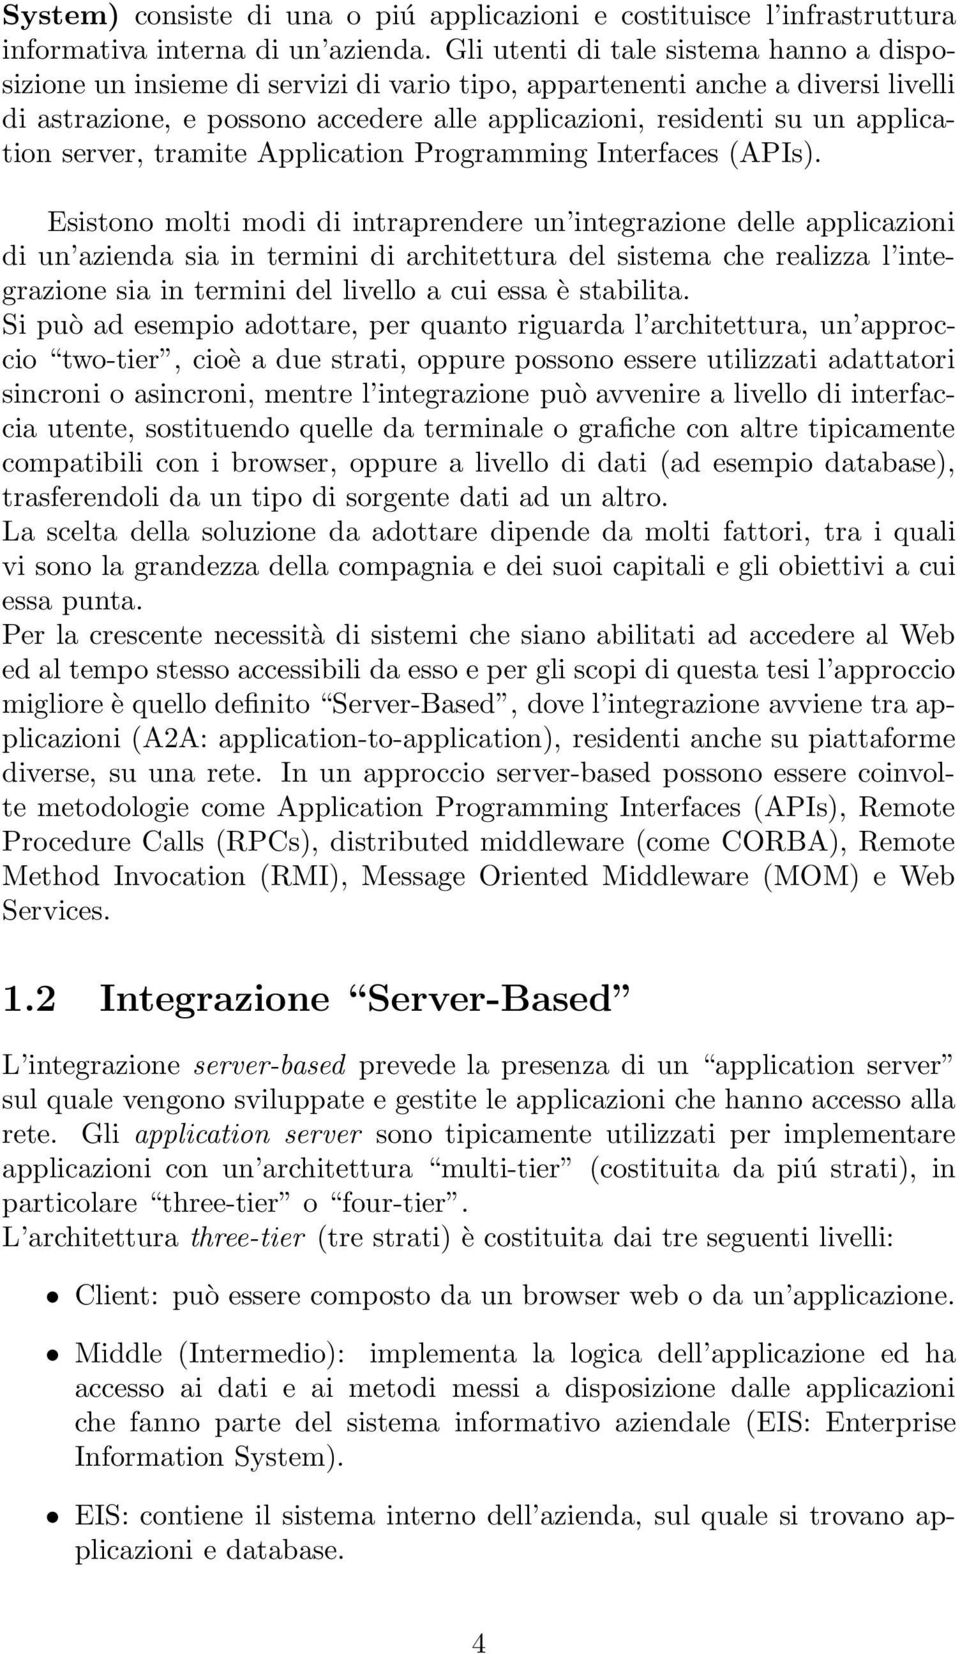 application server, tramite Application Programming Interfaces (APIs).